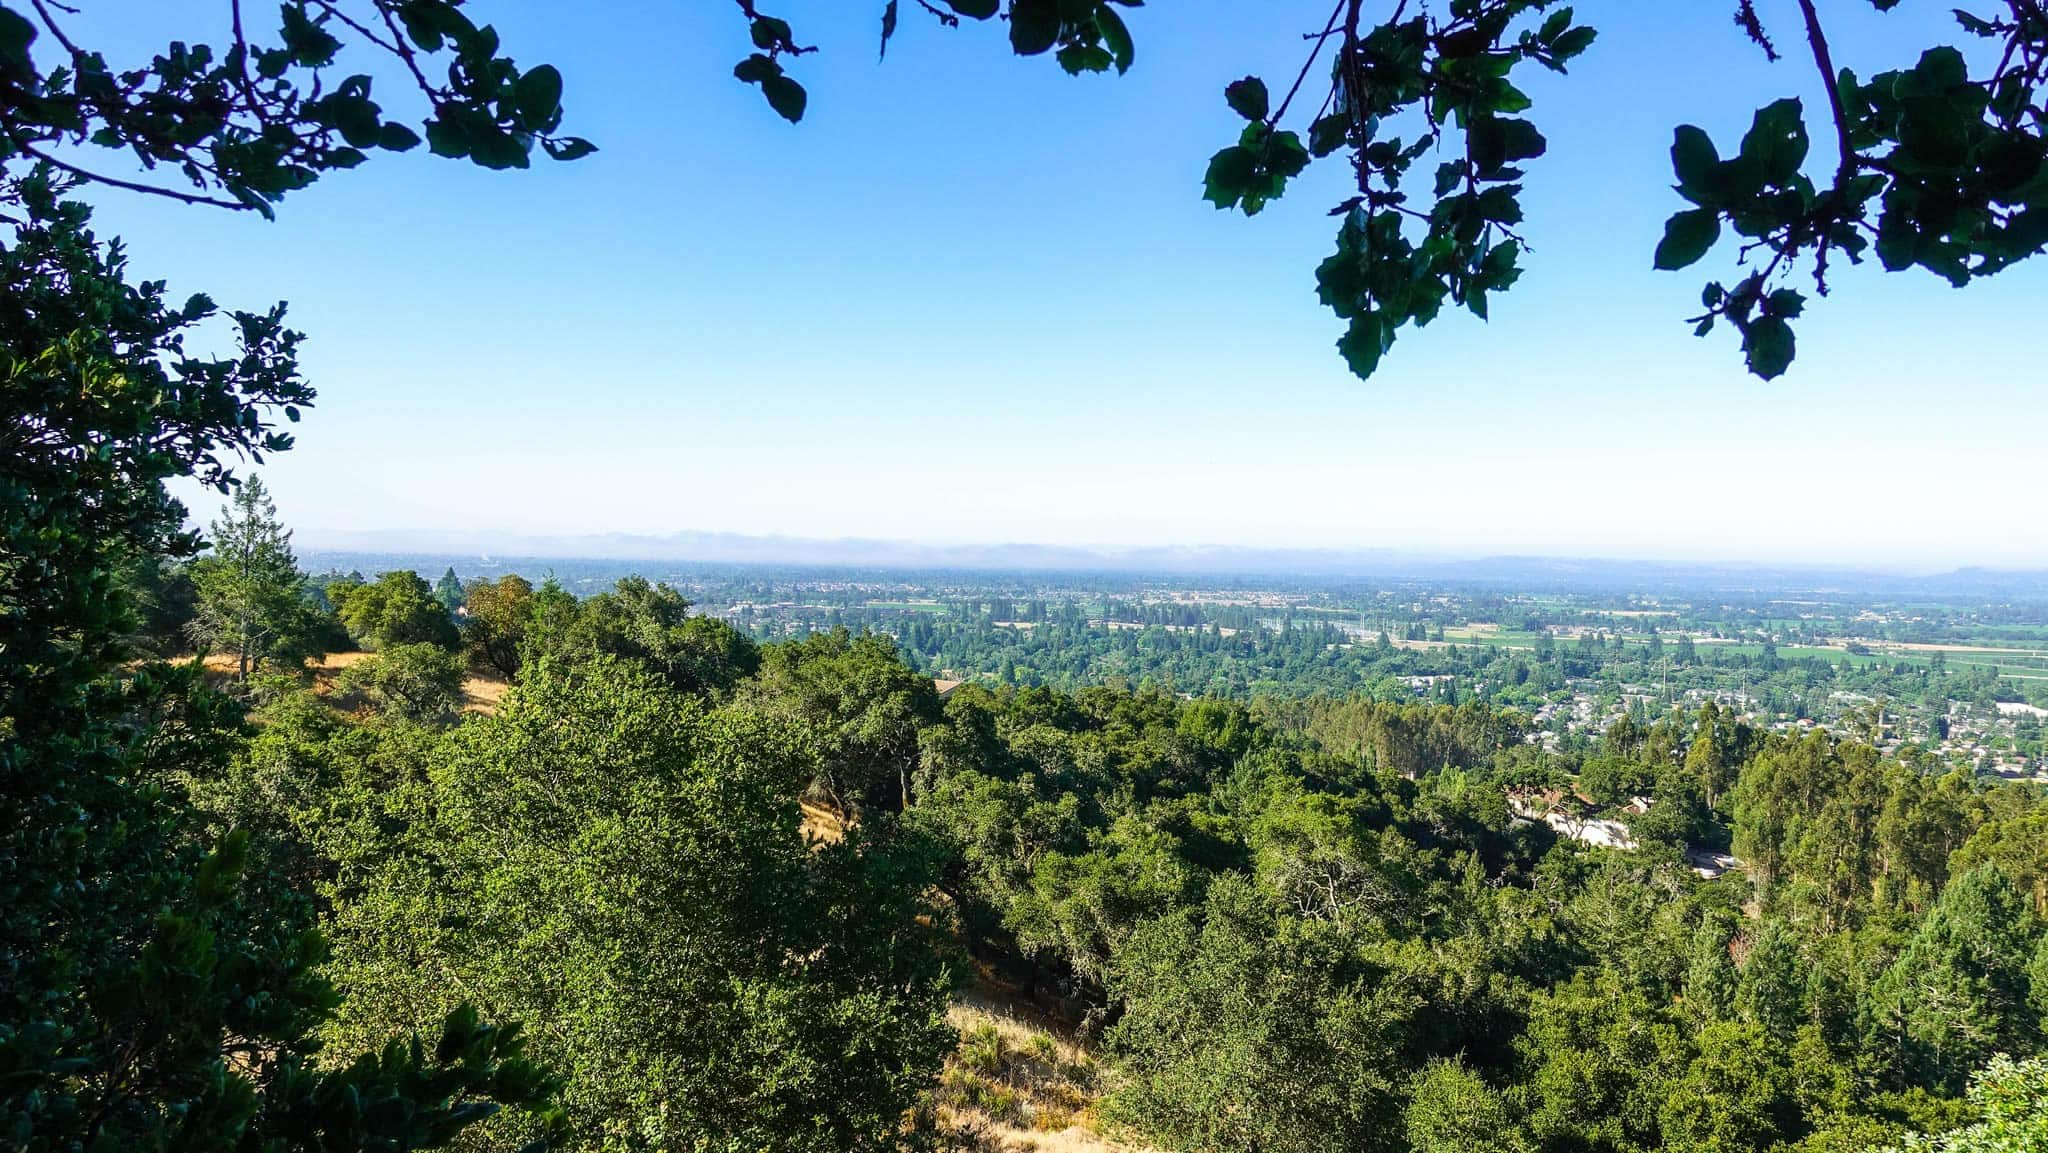 Hiking up to Shiloh Park's Lookout Reveals Incredible Views of Sonoma County